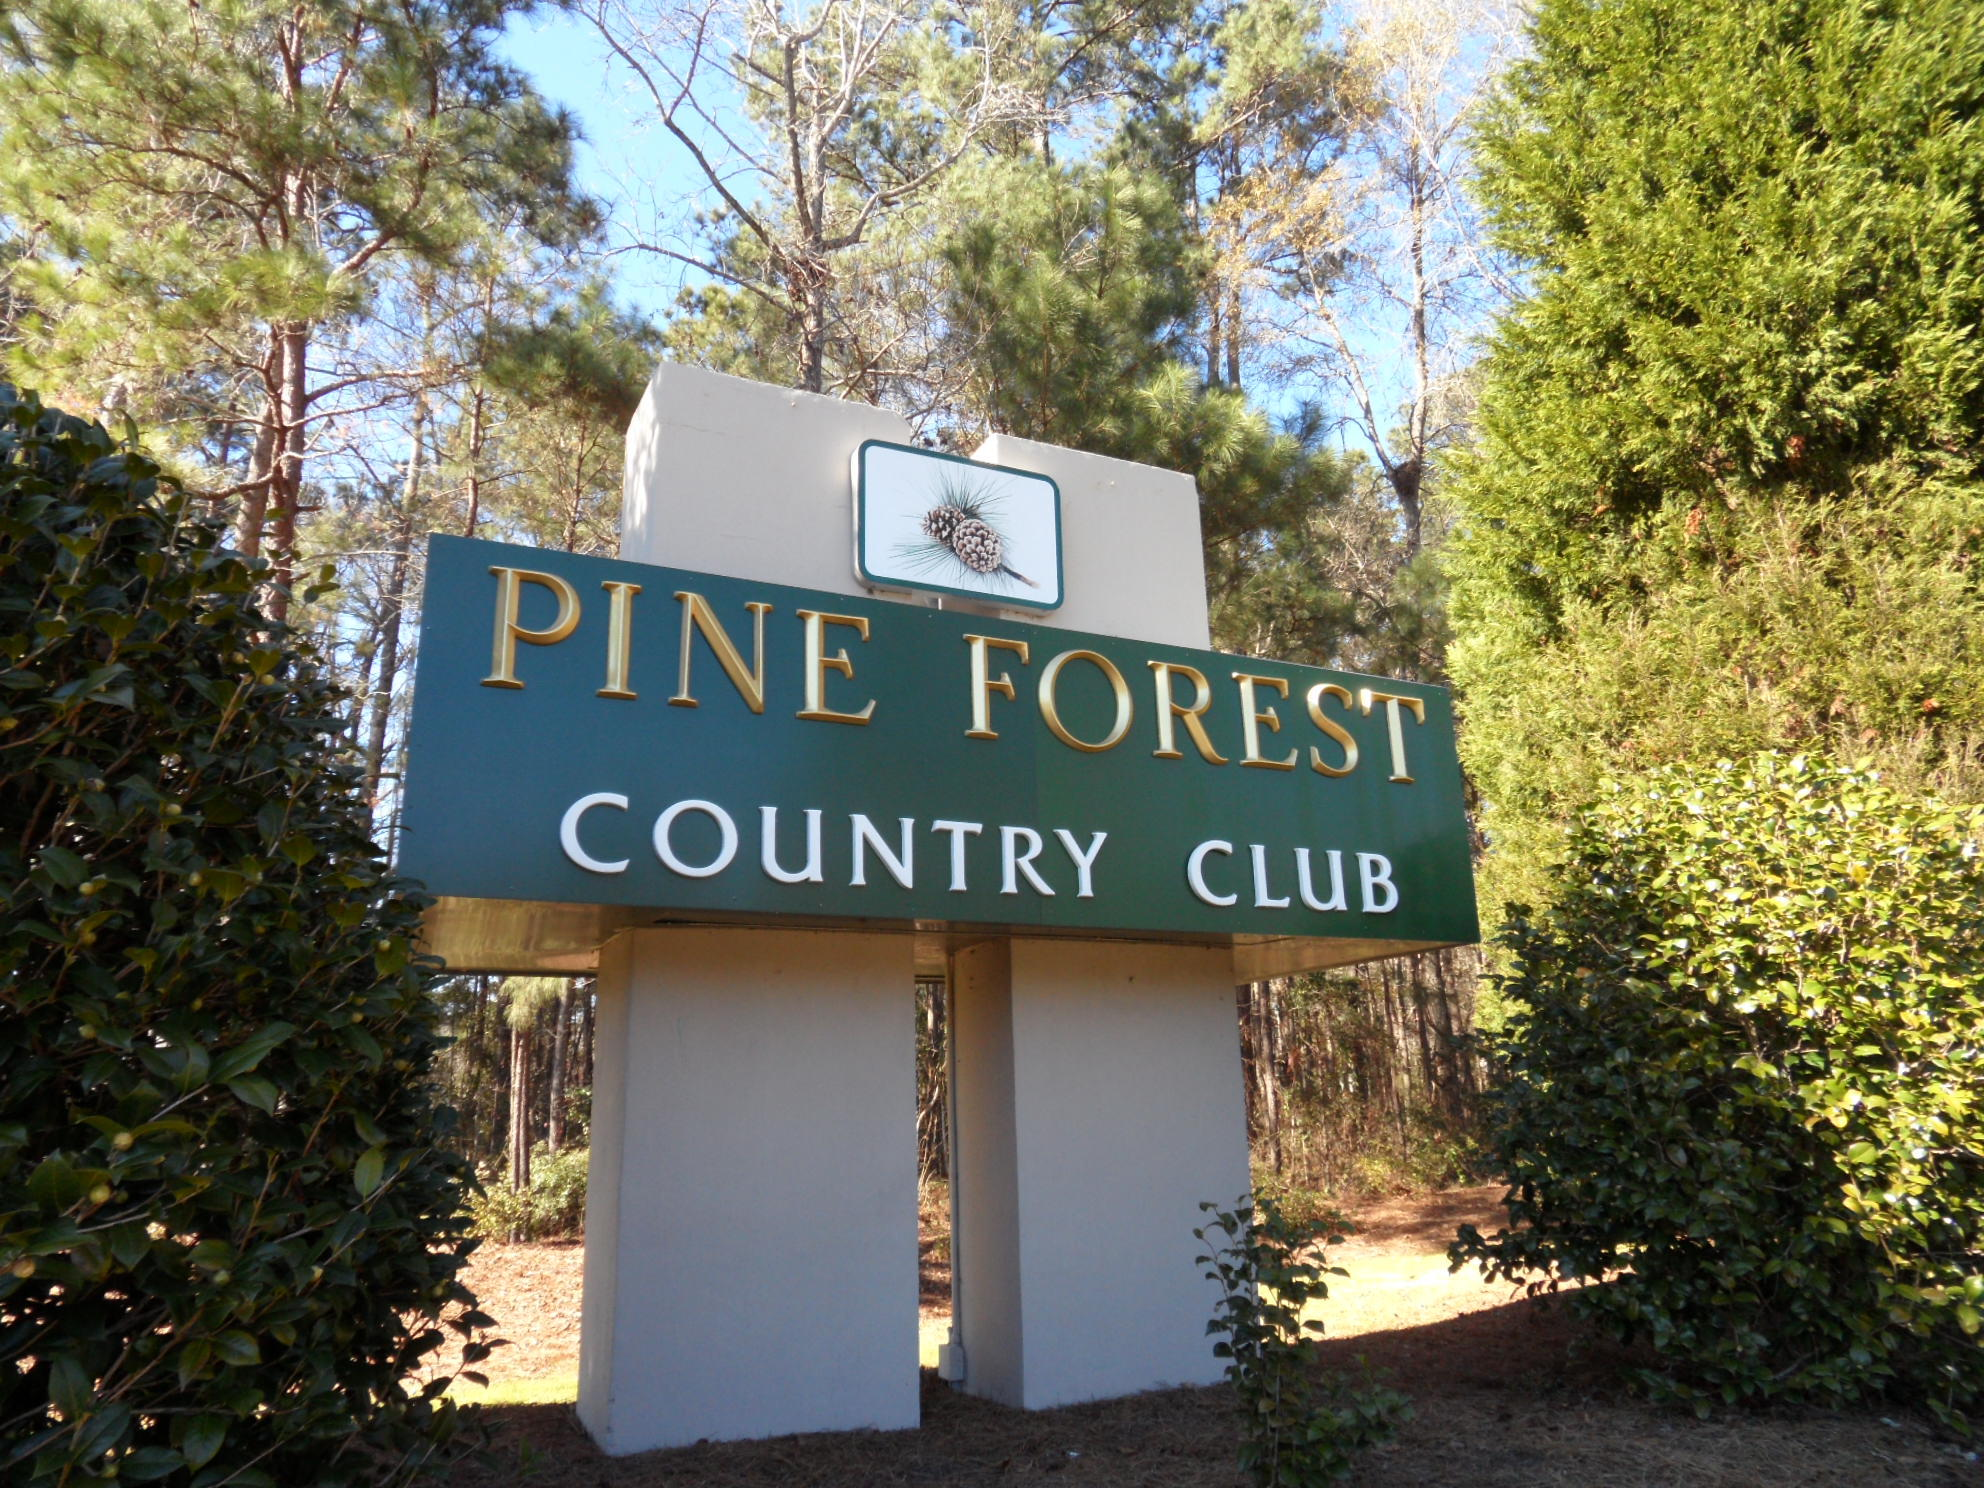 Pine Forest Country Club Homes For Sale - 700 Kilarney, Summerville, SC - 12